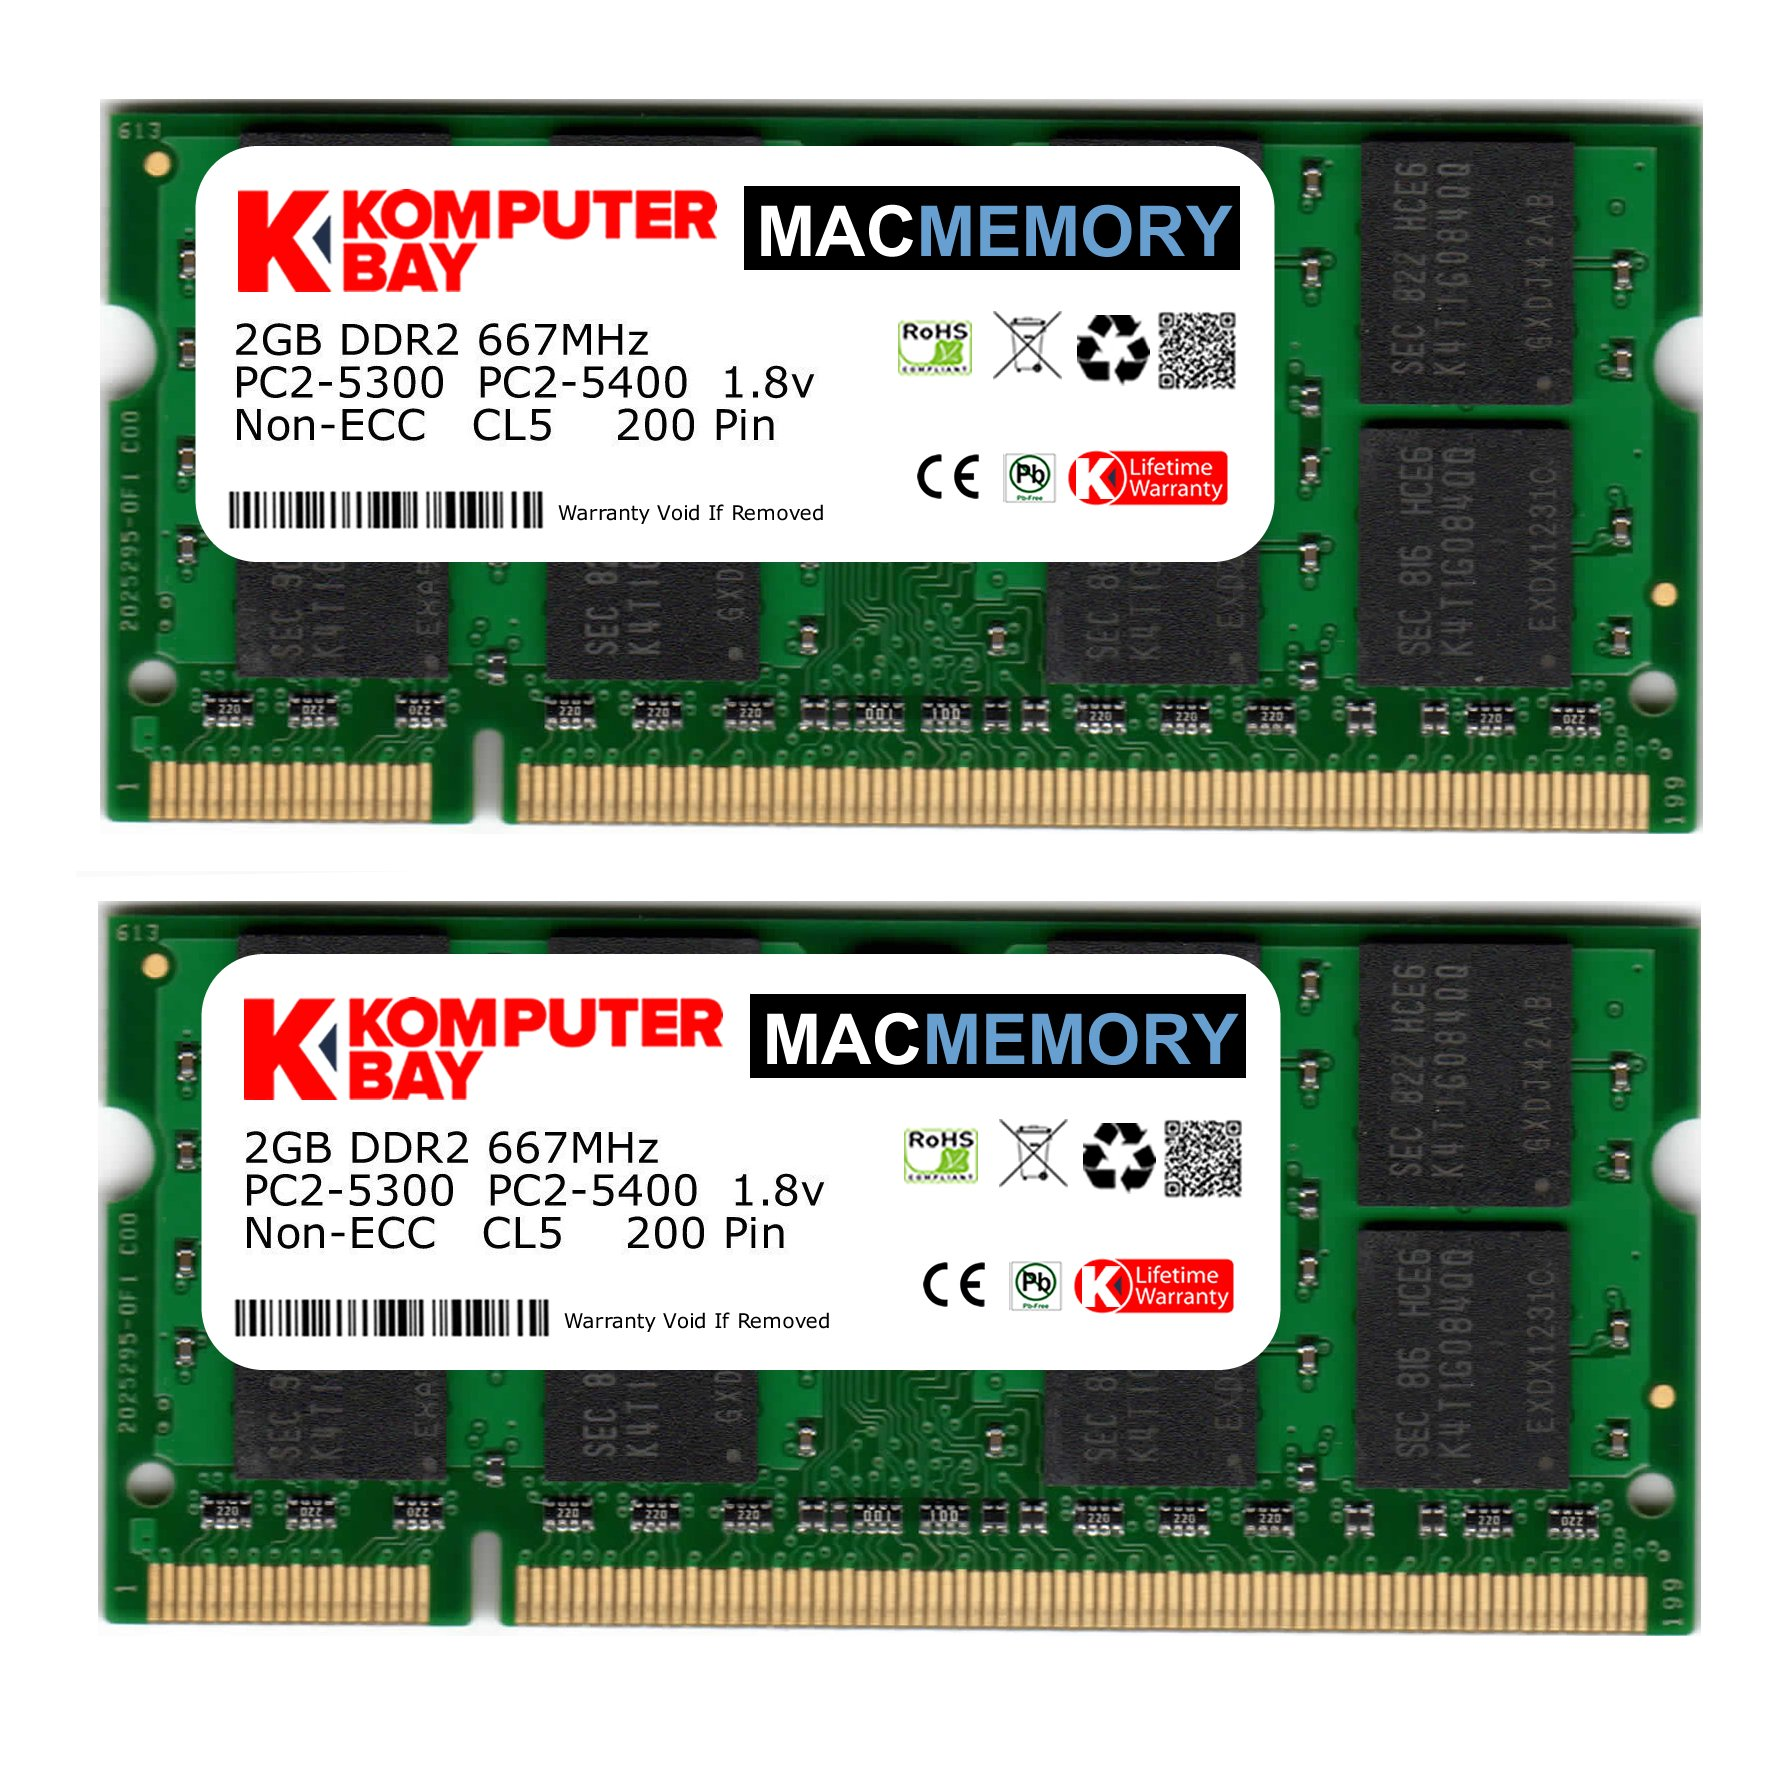 Memoria Ram 4gb Komputerbay Mac Apple Kit (2x 2gb Modules) Pc2-5300 667mhz Ddr2 Sodimm iMac And Macbook